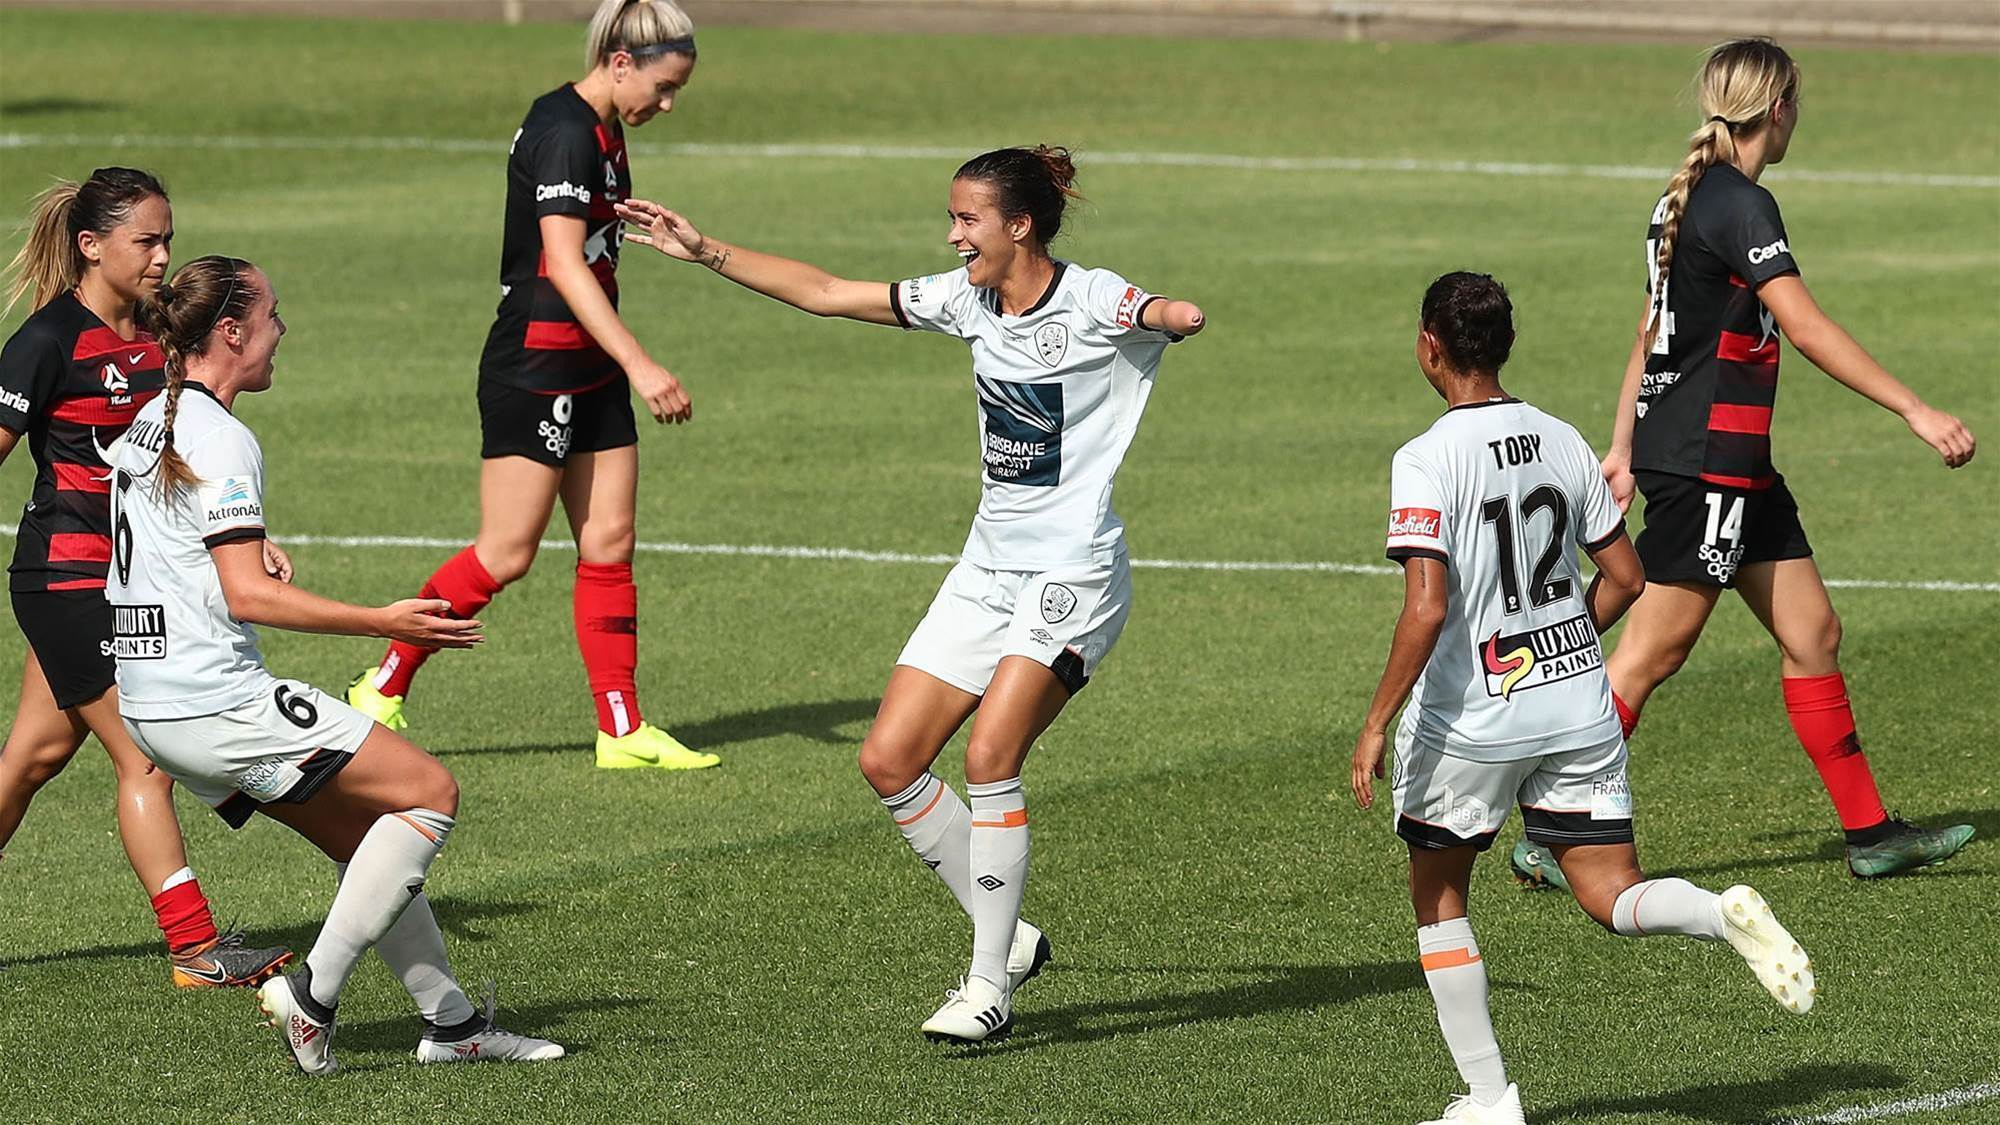 Wanderers drought against Roar continues